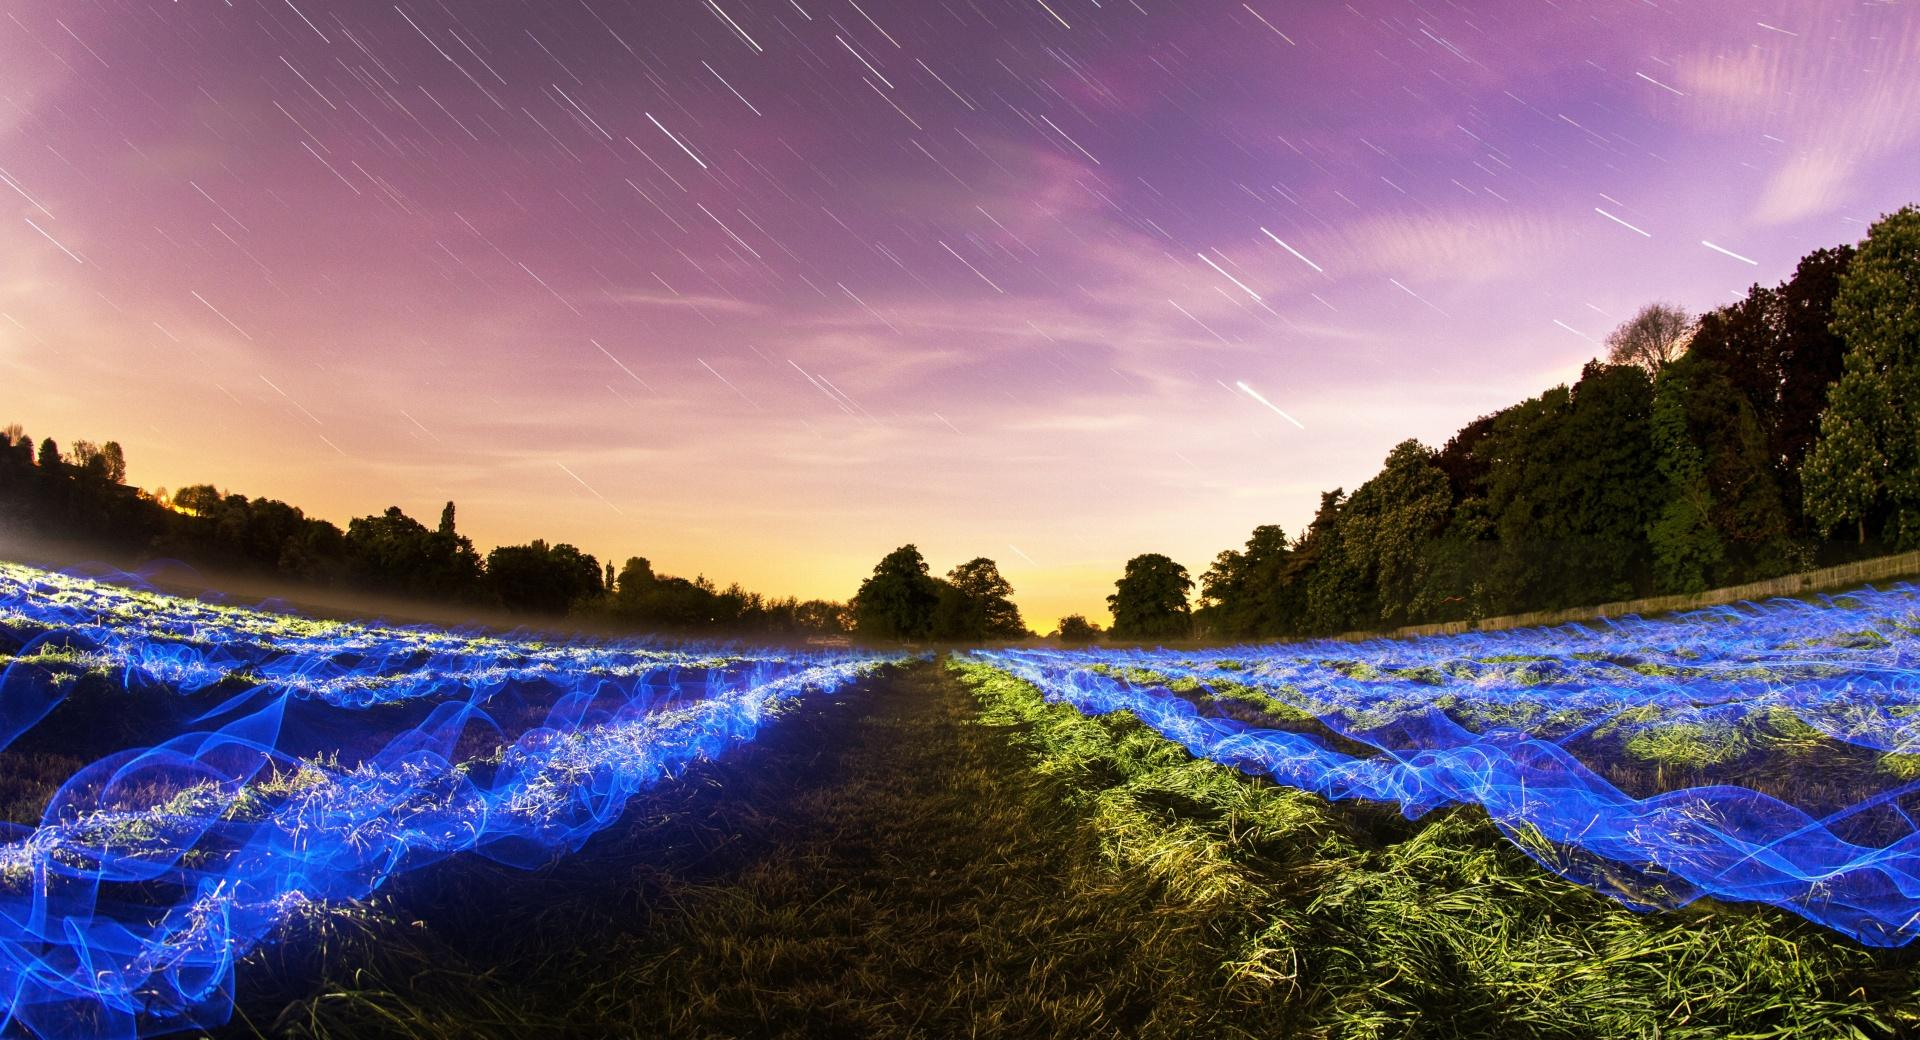 Long Exposure Sky wallpapers HD quality